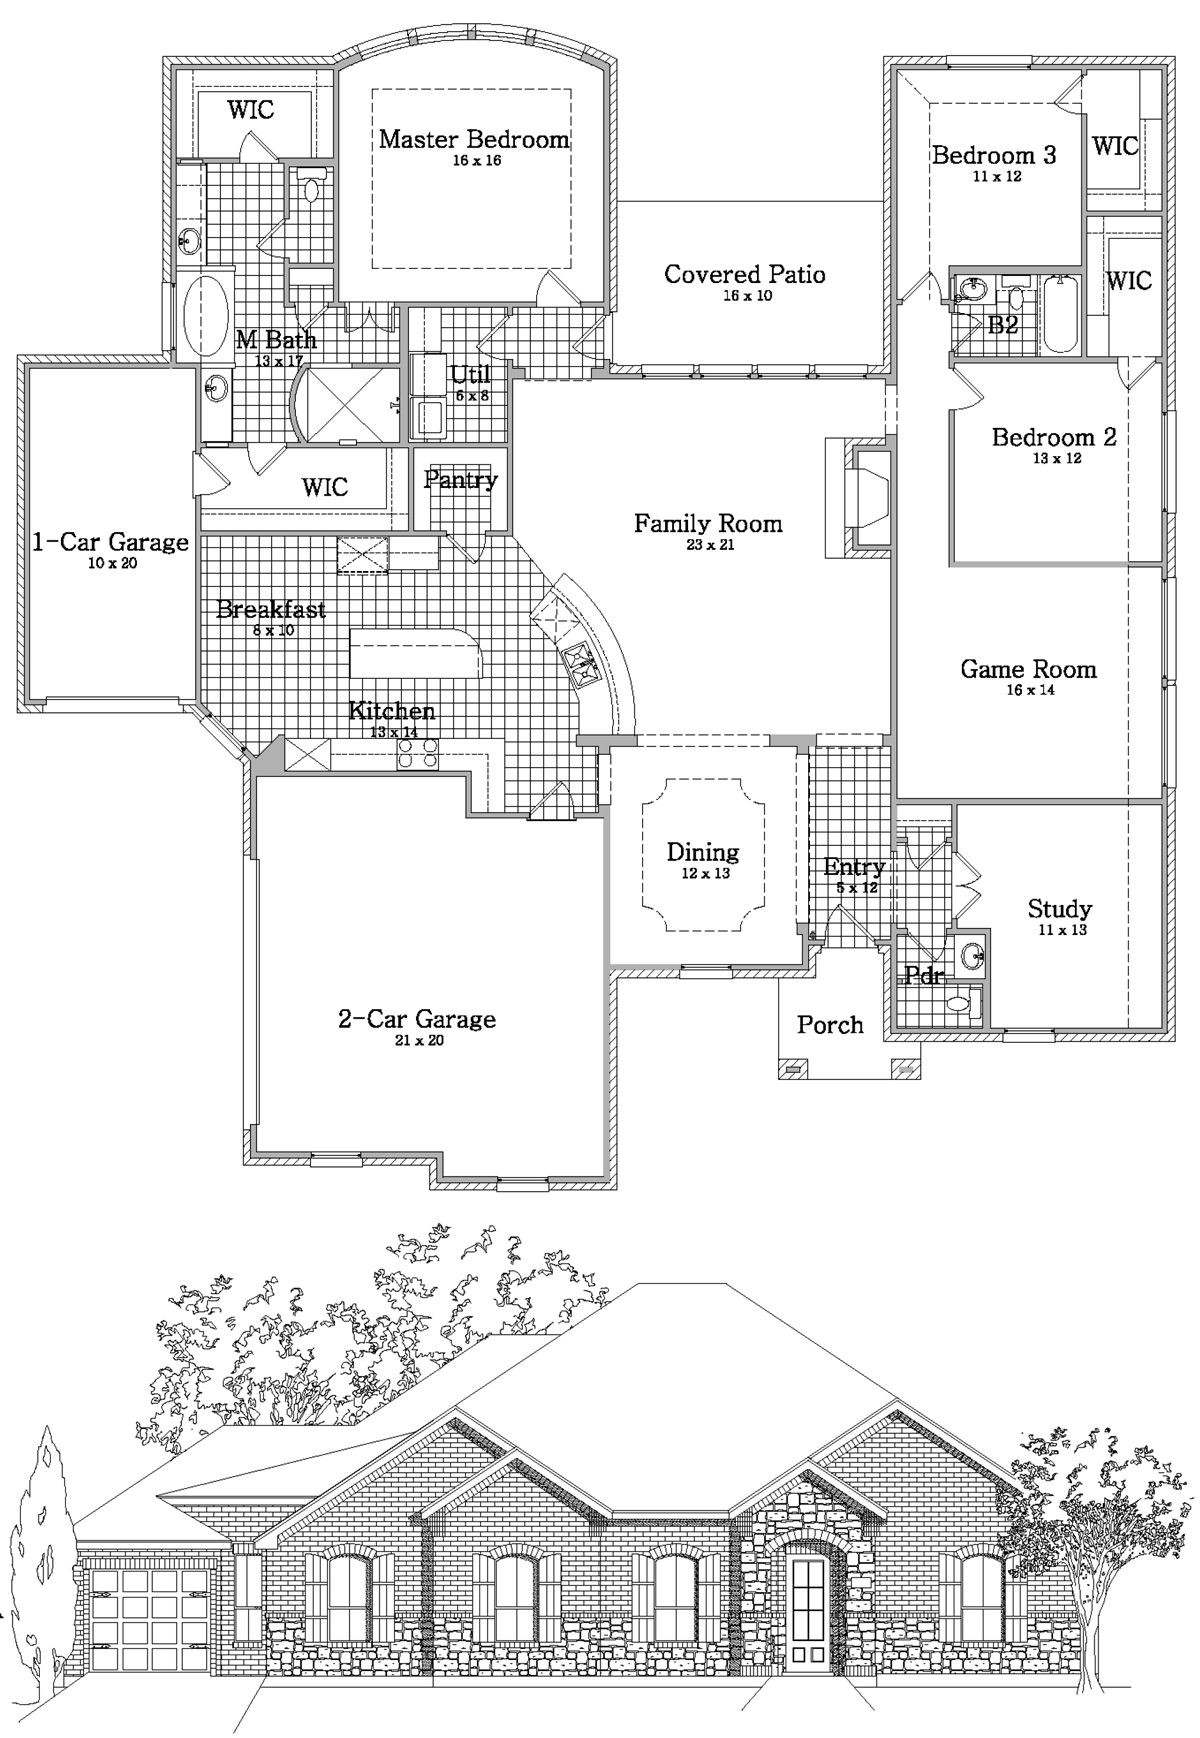 Palermo Discover Energy Efficient Floor Plans For New Homes In San Antonio Texas Imagine Homes Floor Plans New Homes House Design